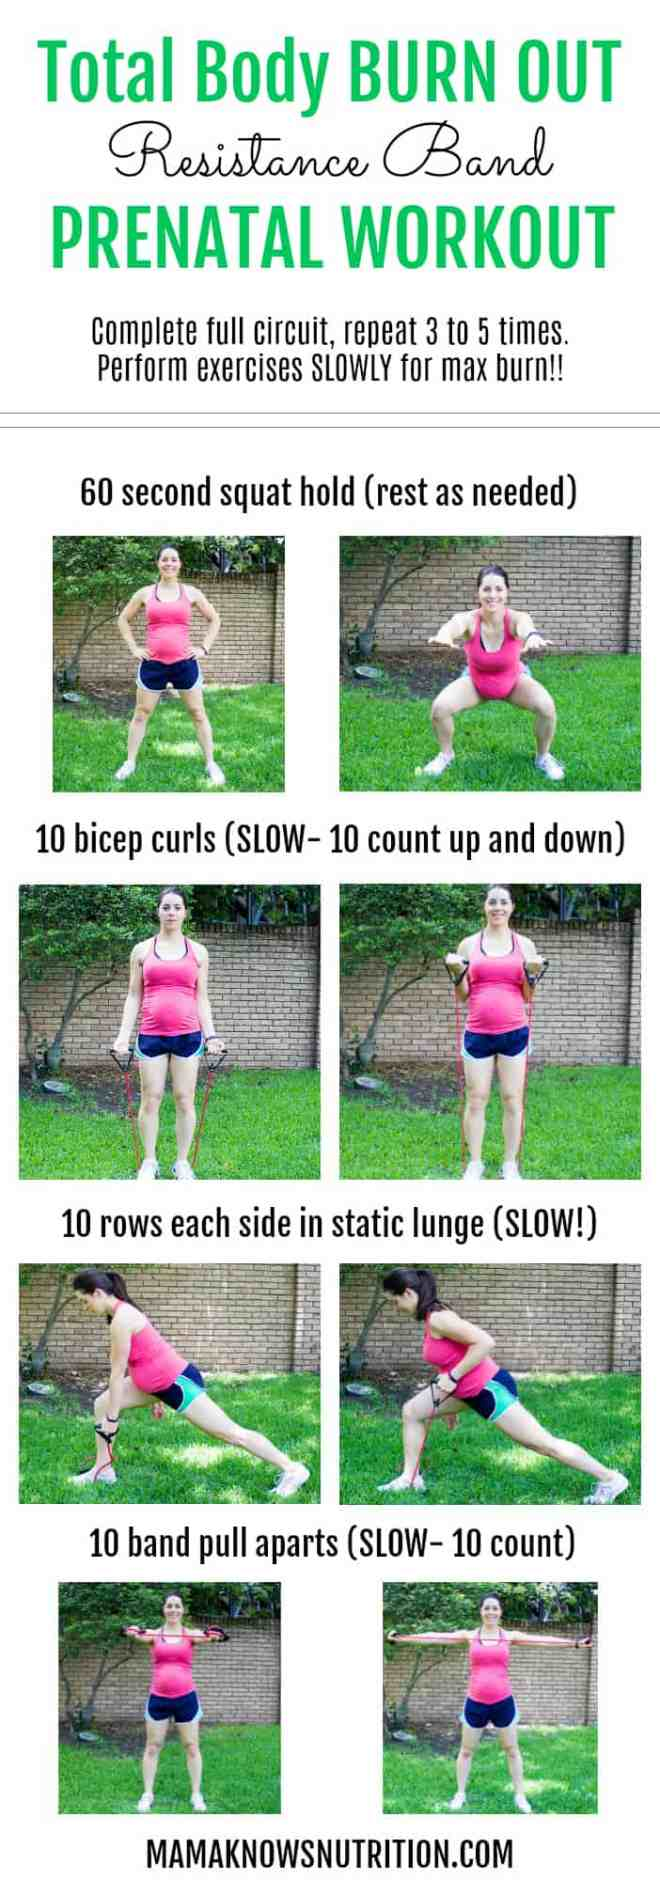 Pregnancy Workout Total Body BURN OUT | mamaknowsnutrition.com